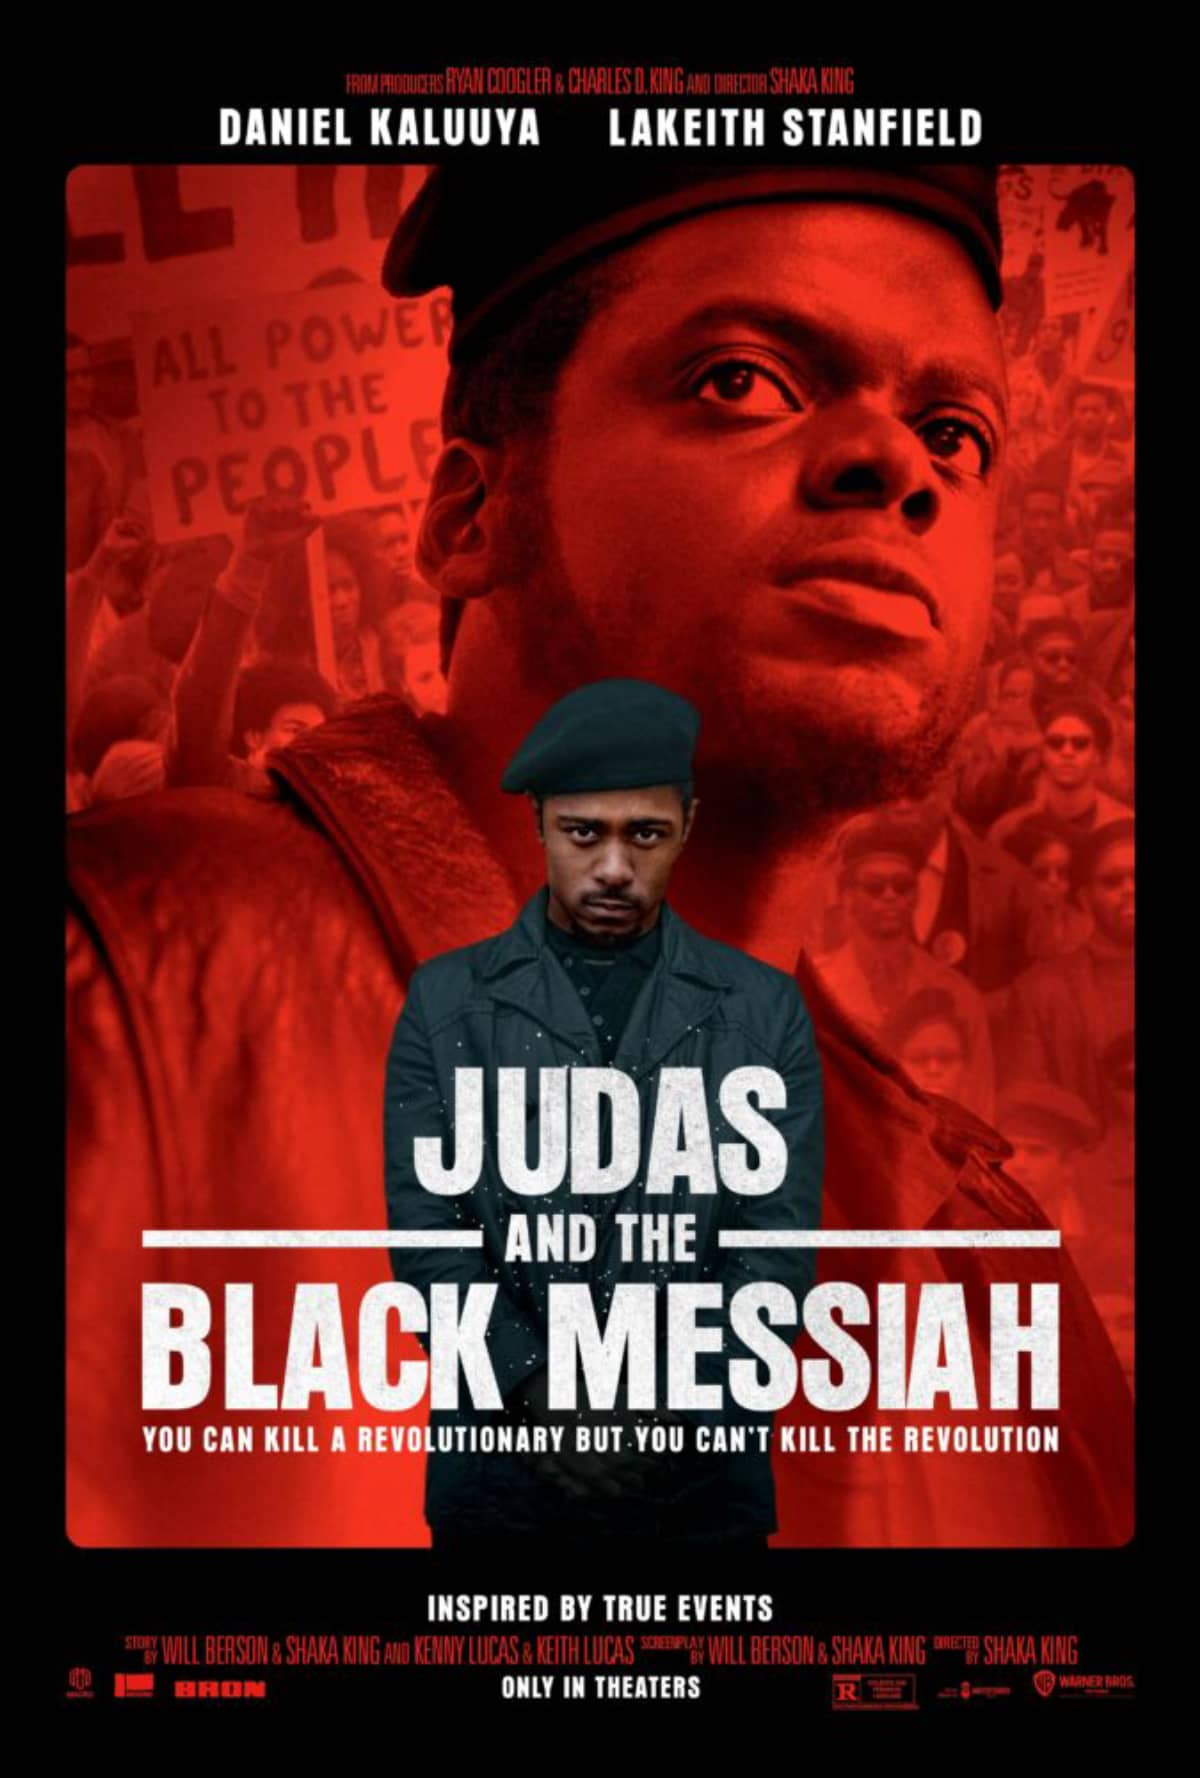 Pôster de 'Judas e o Messias Negro'.